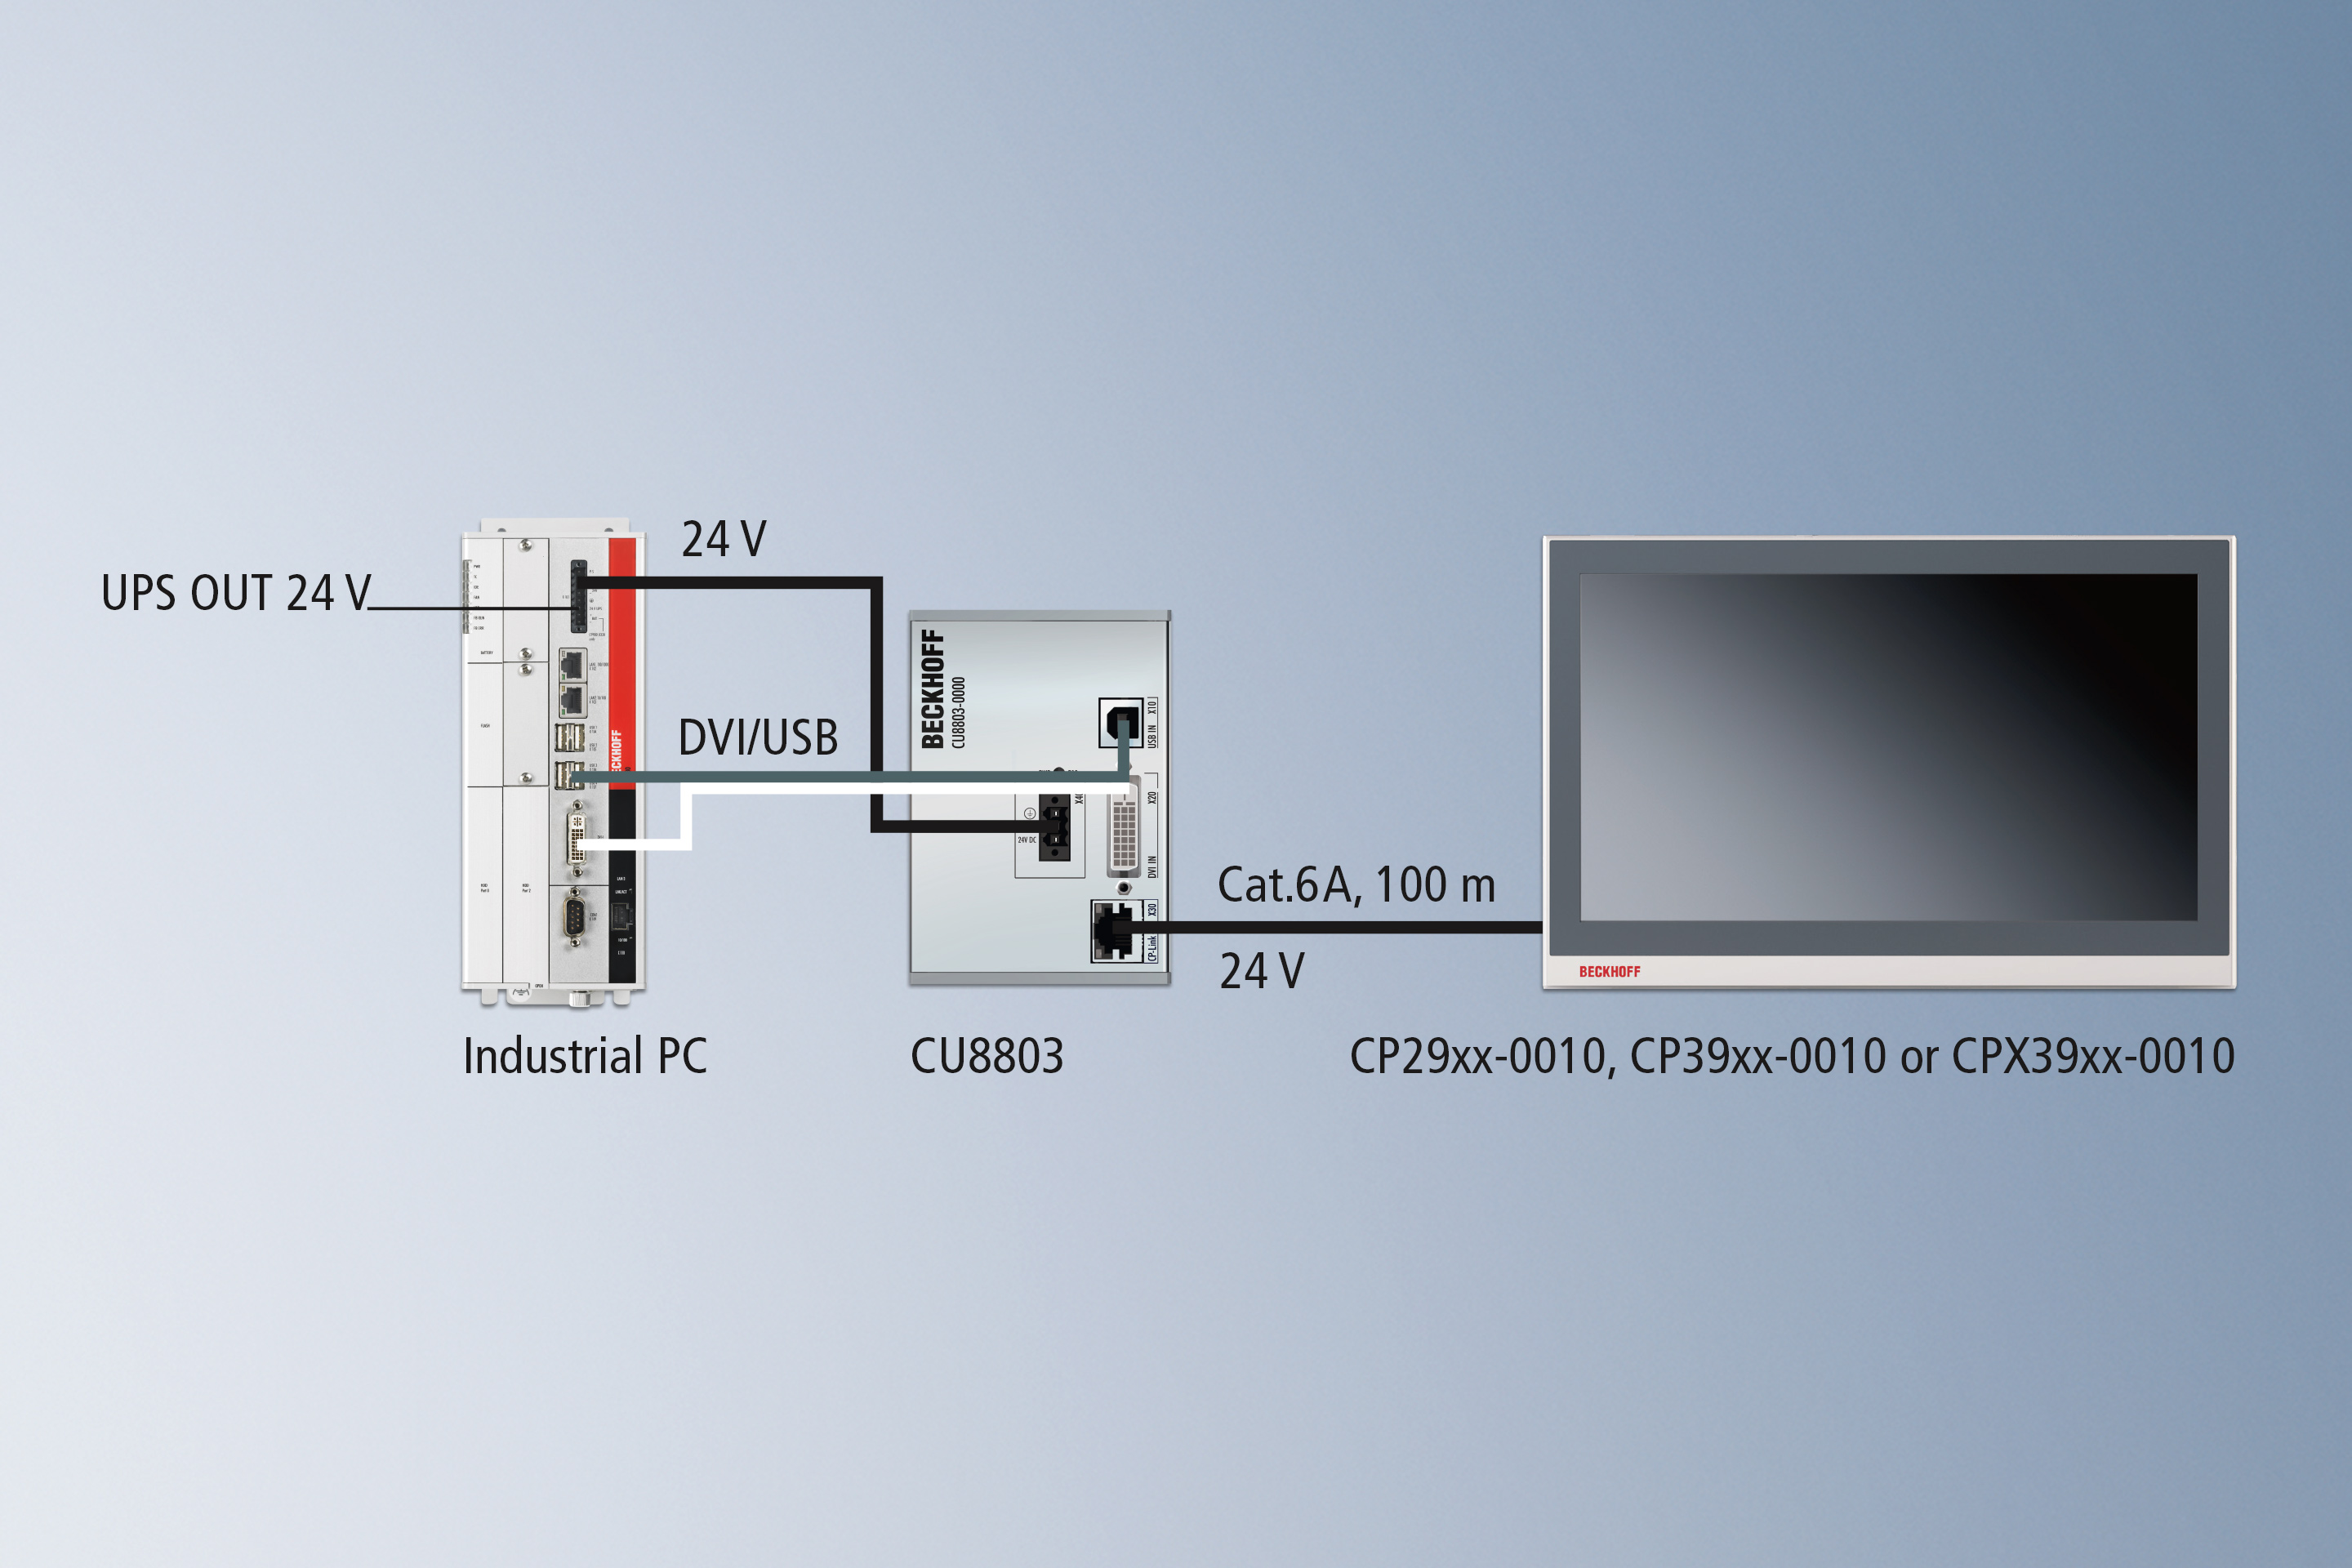 CP-Link 4 – The One Cable Display Link: DVI, USB and 24 V via CU8803 transmitter box